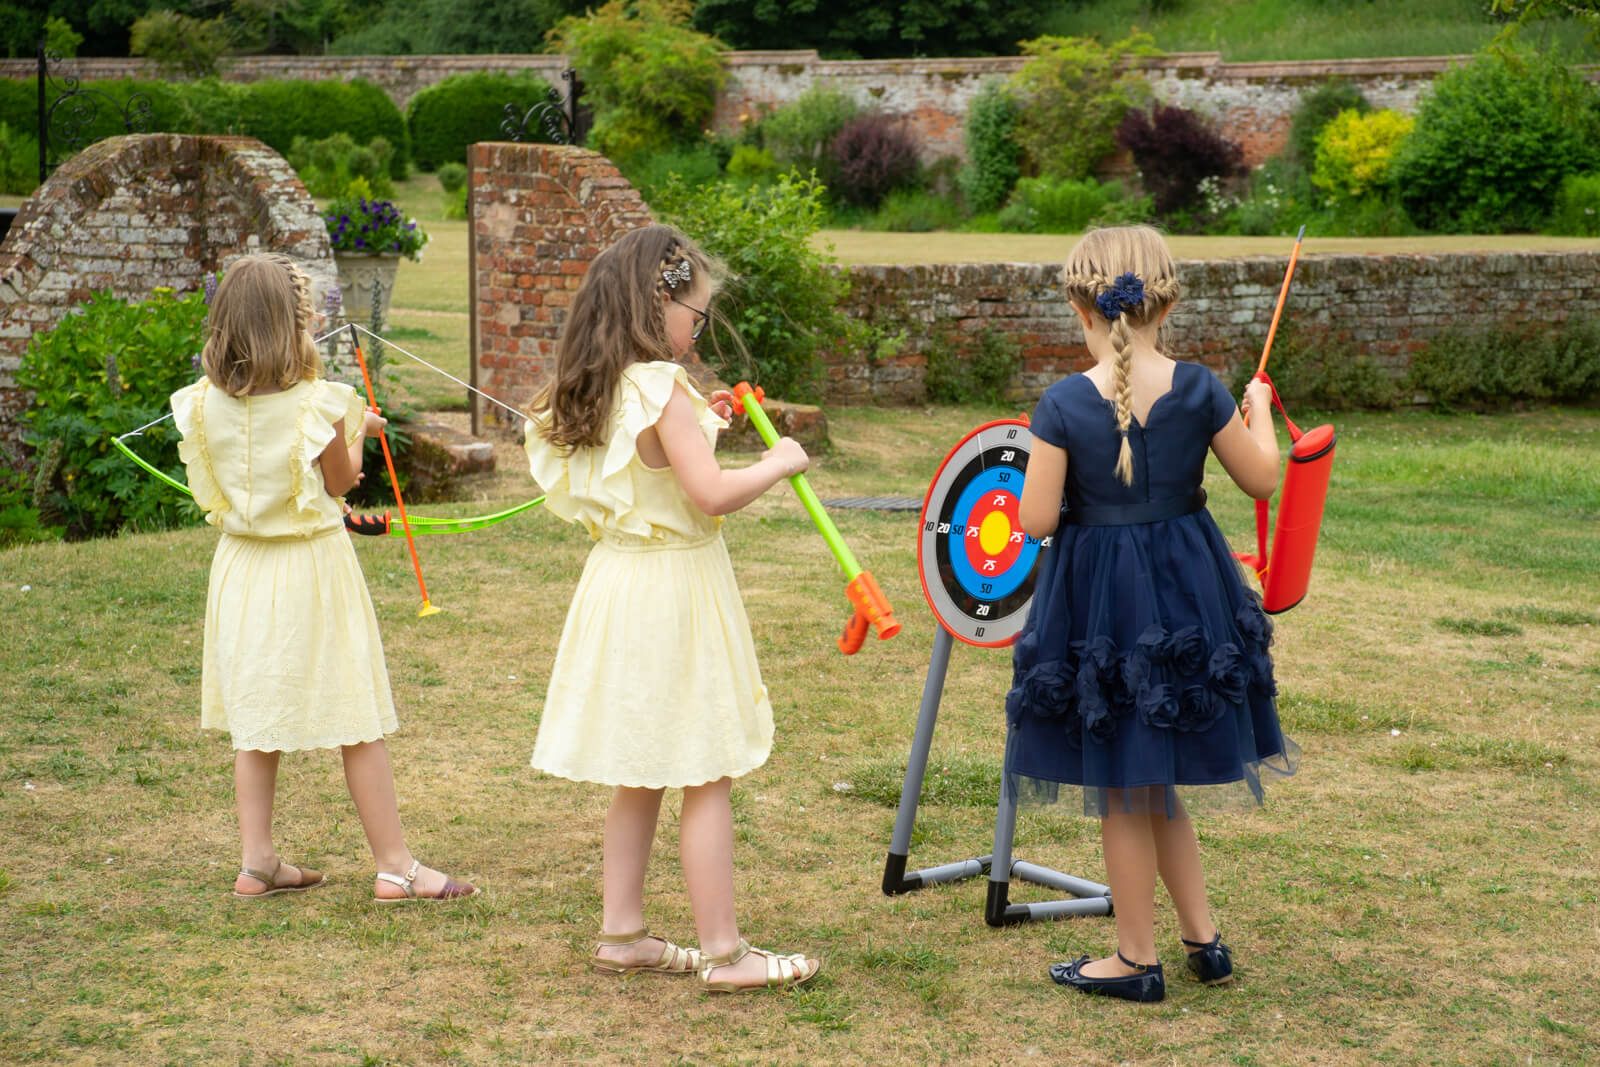 Little girls in dresses play with toys on the lawn during a wedding reception